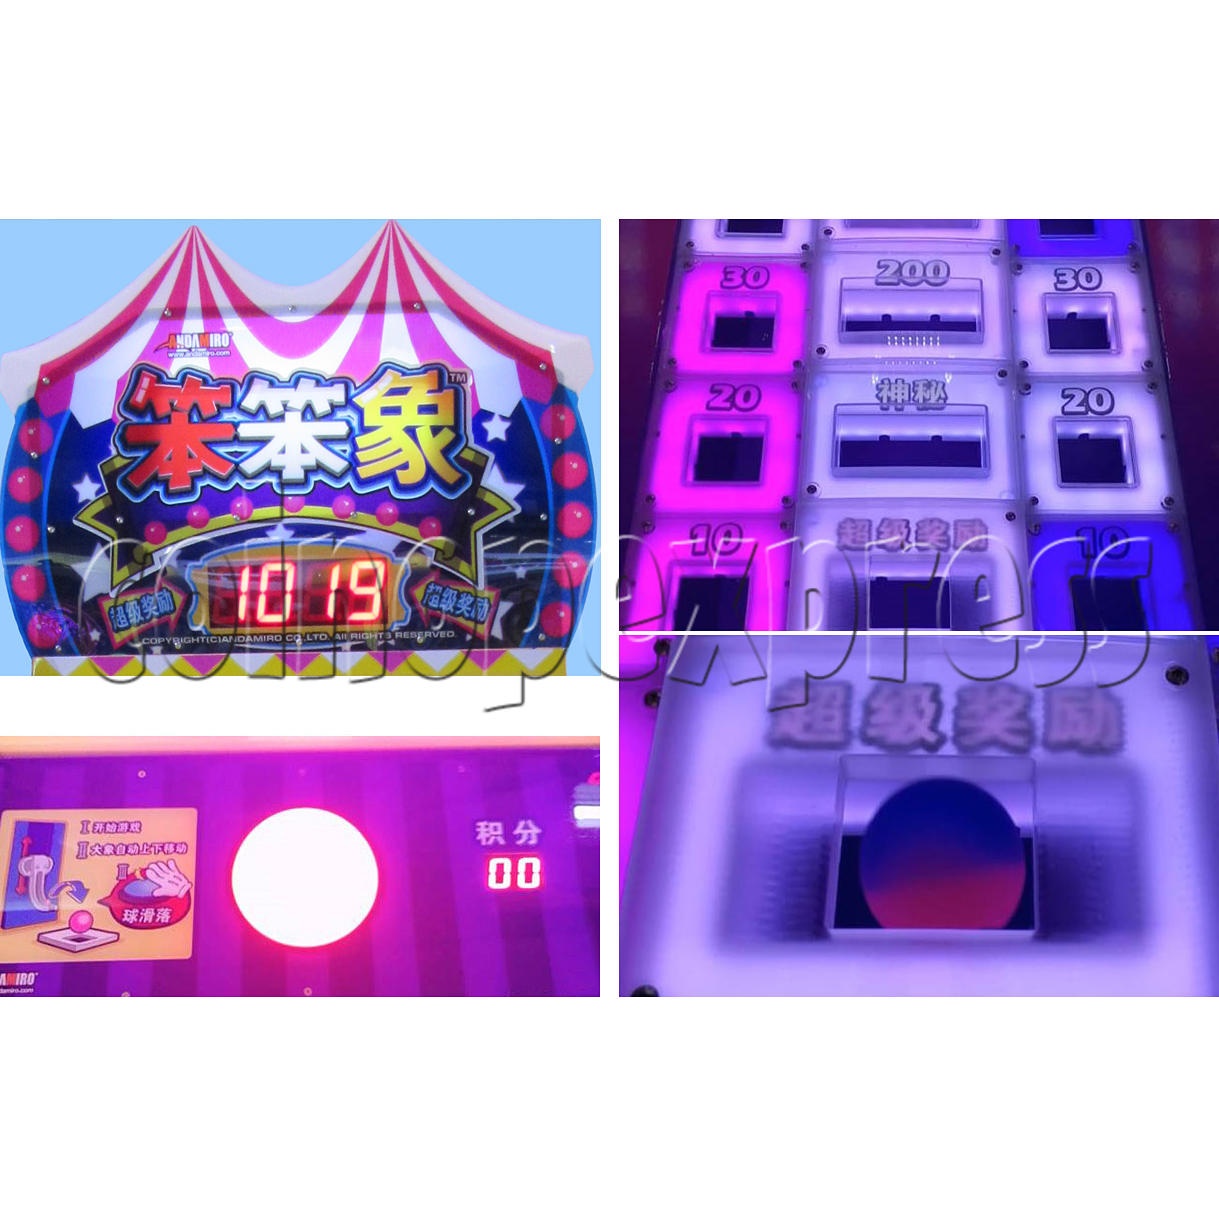 Circus Ball Drop Skill Test Redemption Machine 34824